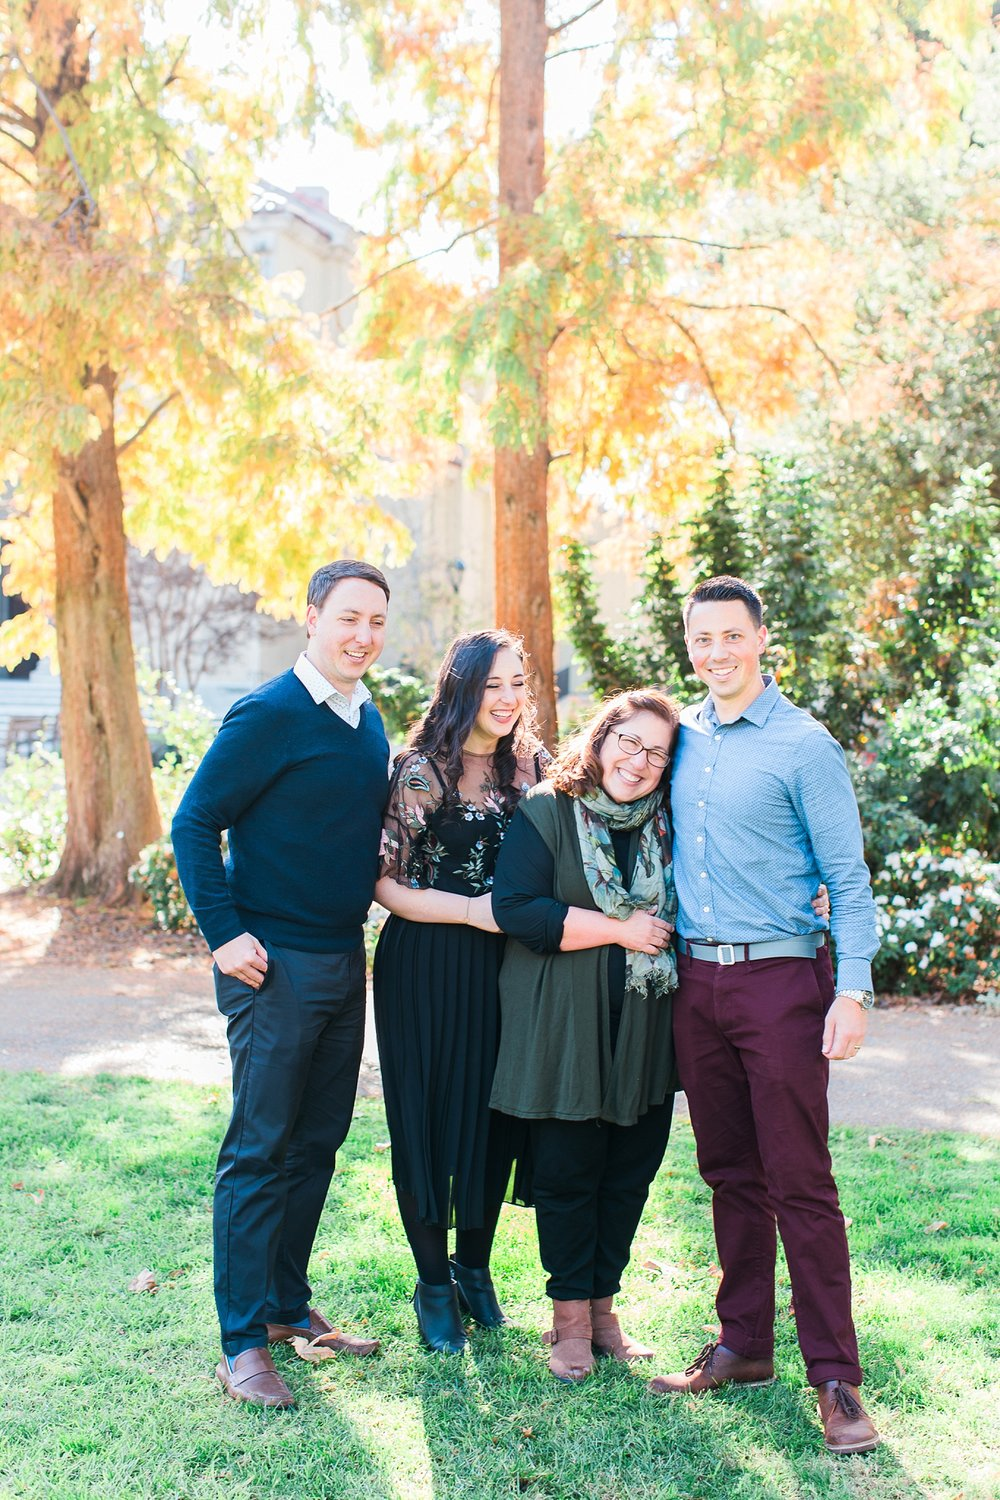 Claremont-Colleges-Family-Photos-26_WEB.jpg